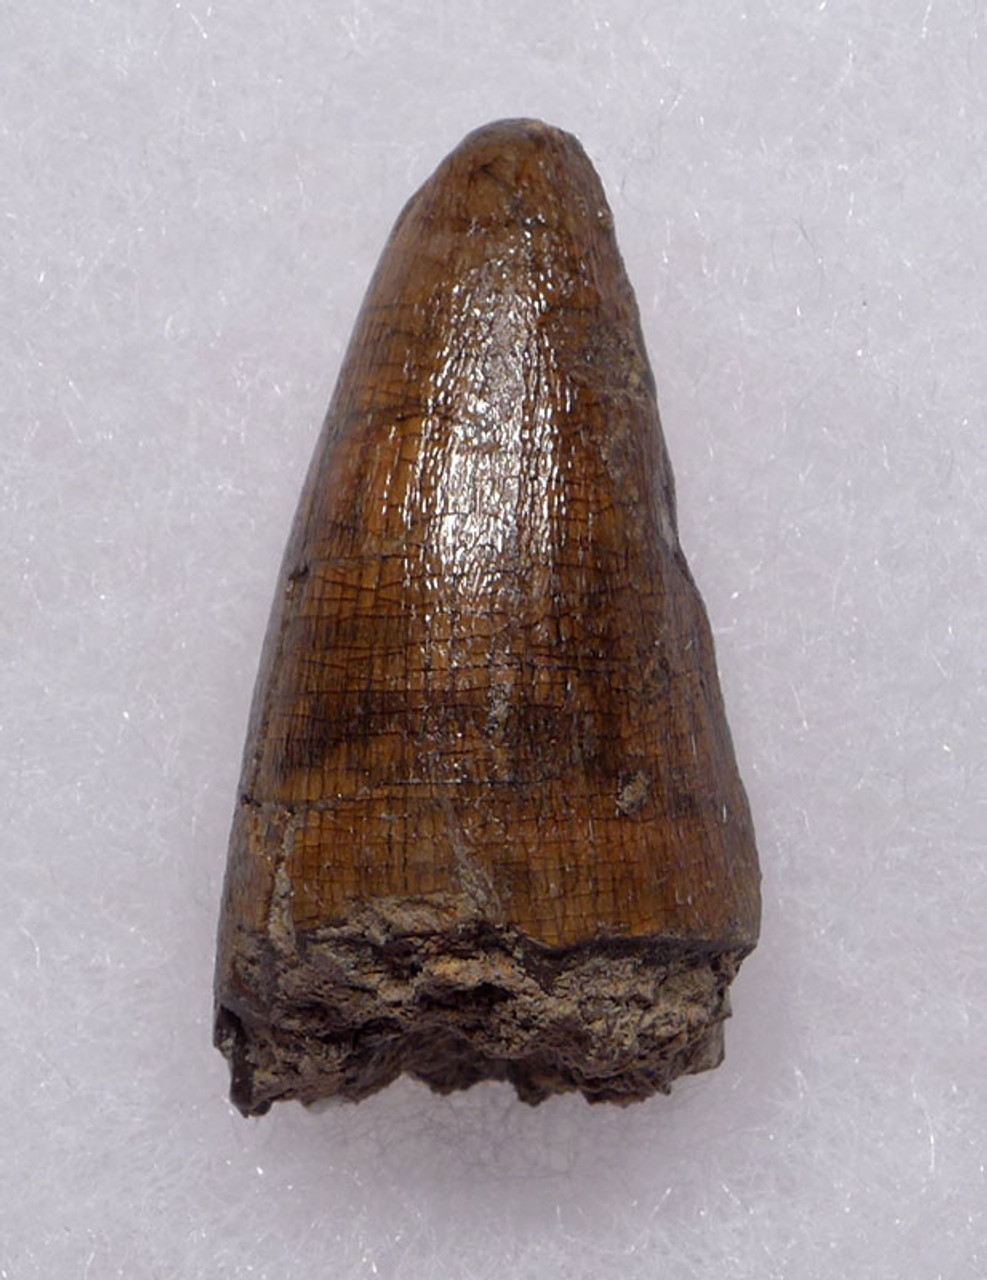 CROC052 - JAVA MAN KILLER CROCODILE FOSSIL TOOTH FROM THE FAMOUS HOMO ERECTUS DEPOSITS OF SOLO RIVER INDONESIA